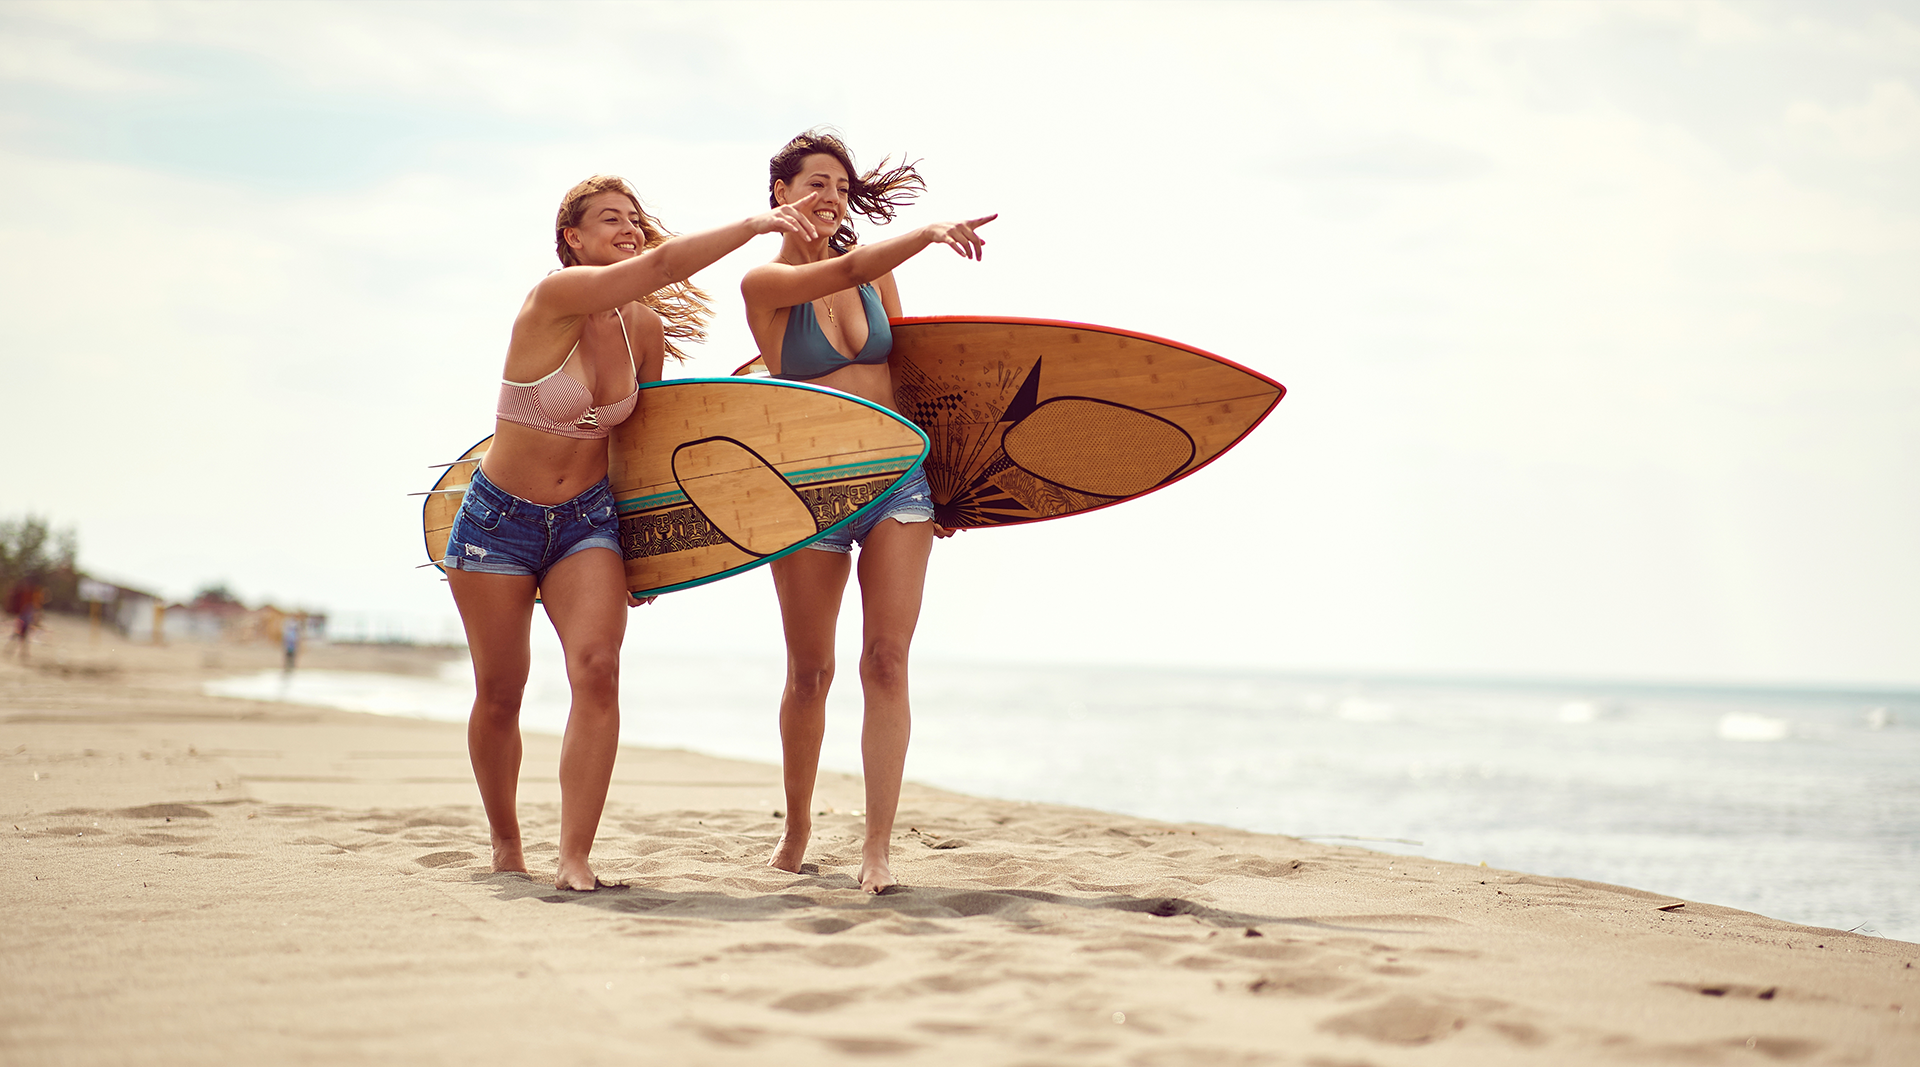 Friendly surf&stay